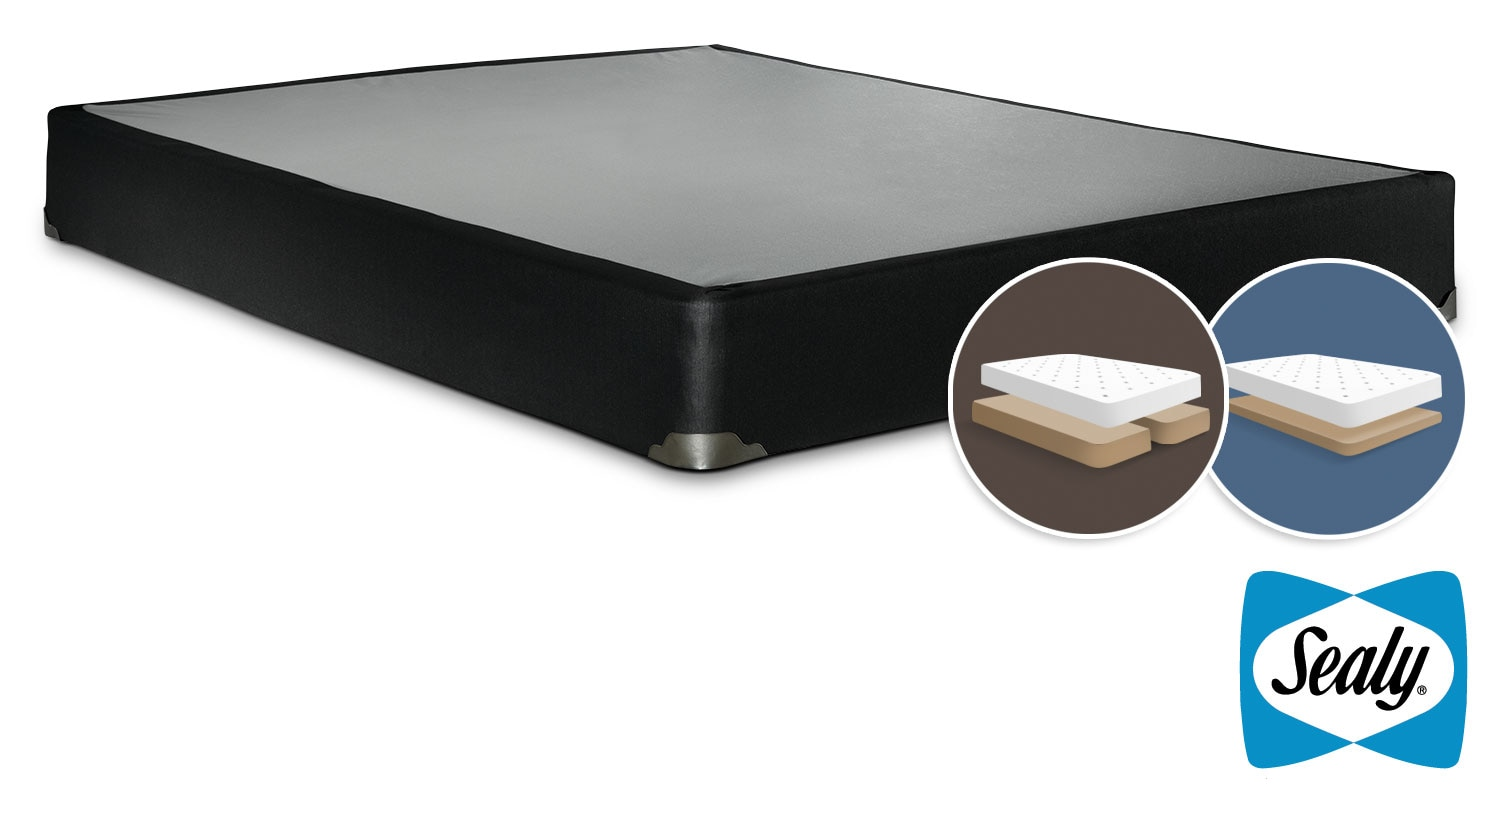 Sealy Luxury Noir King Low Profile Split Boxspring